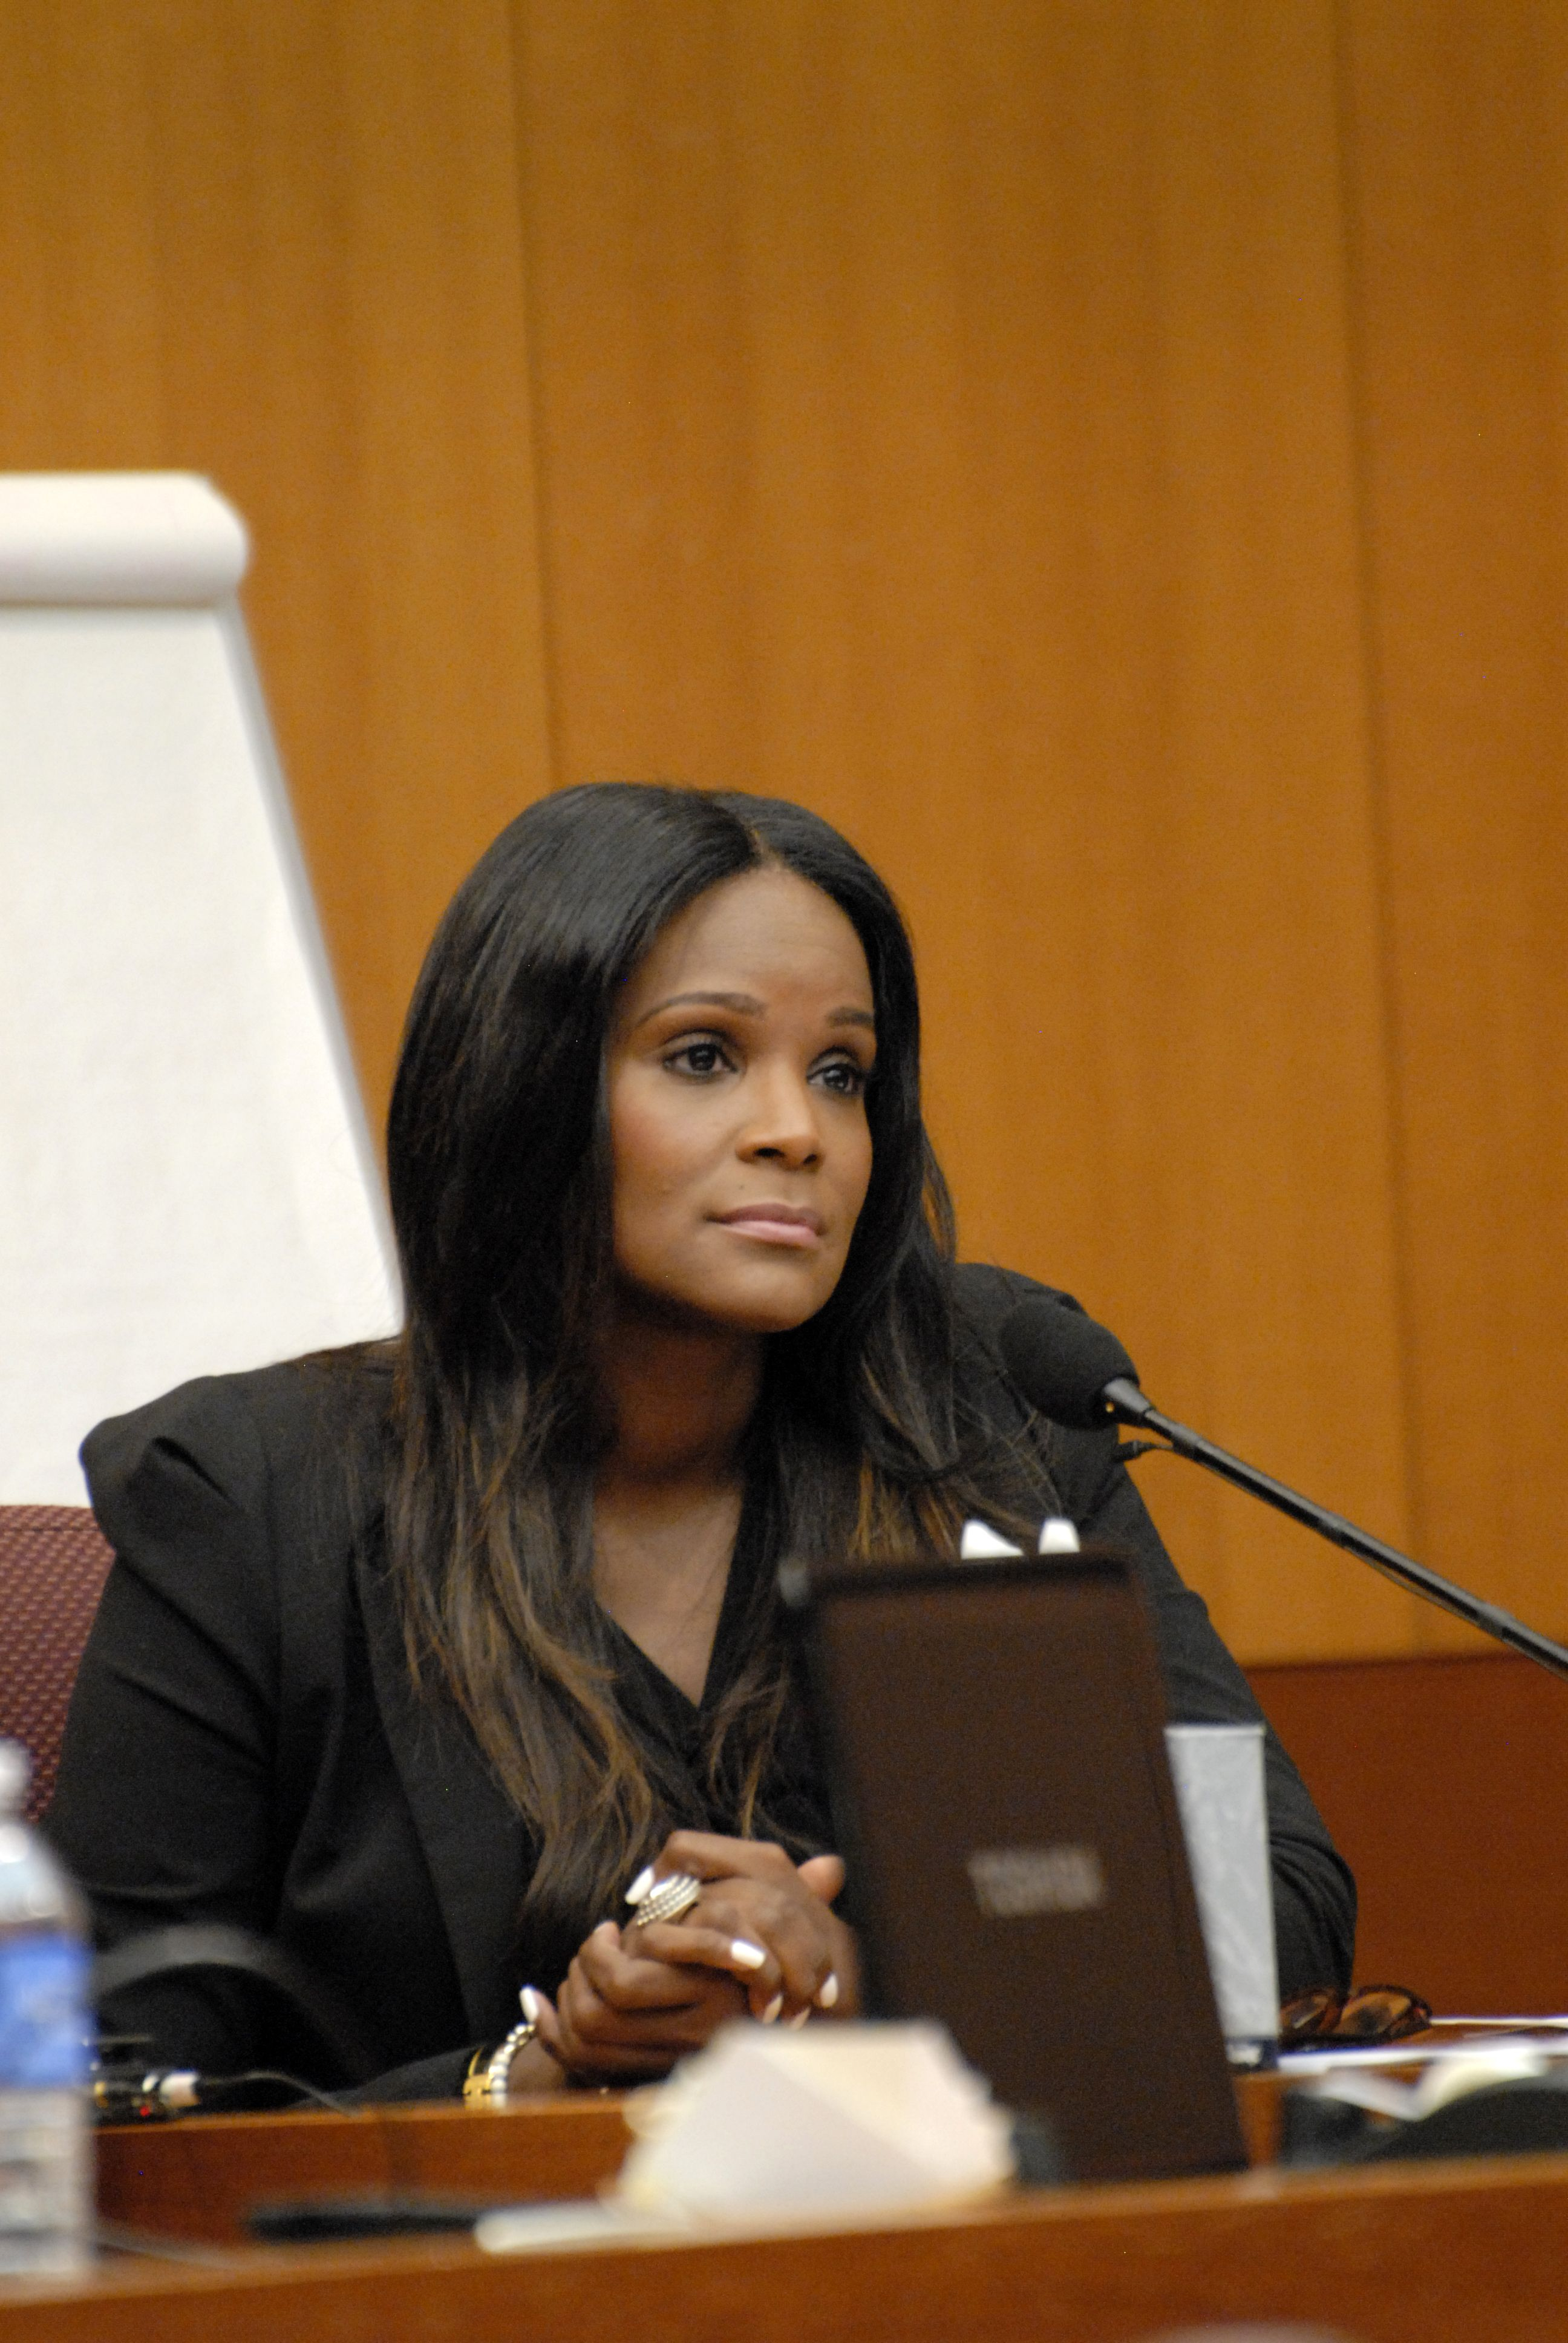 Tameka Foster at the court hearing to discuss child custody at Fulton County State Court on August 14, 2012 in Atlanta, Georgia. | Source: Getty Images